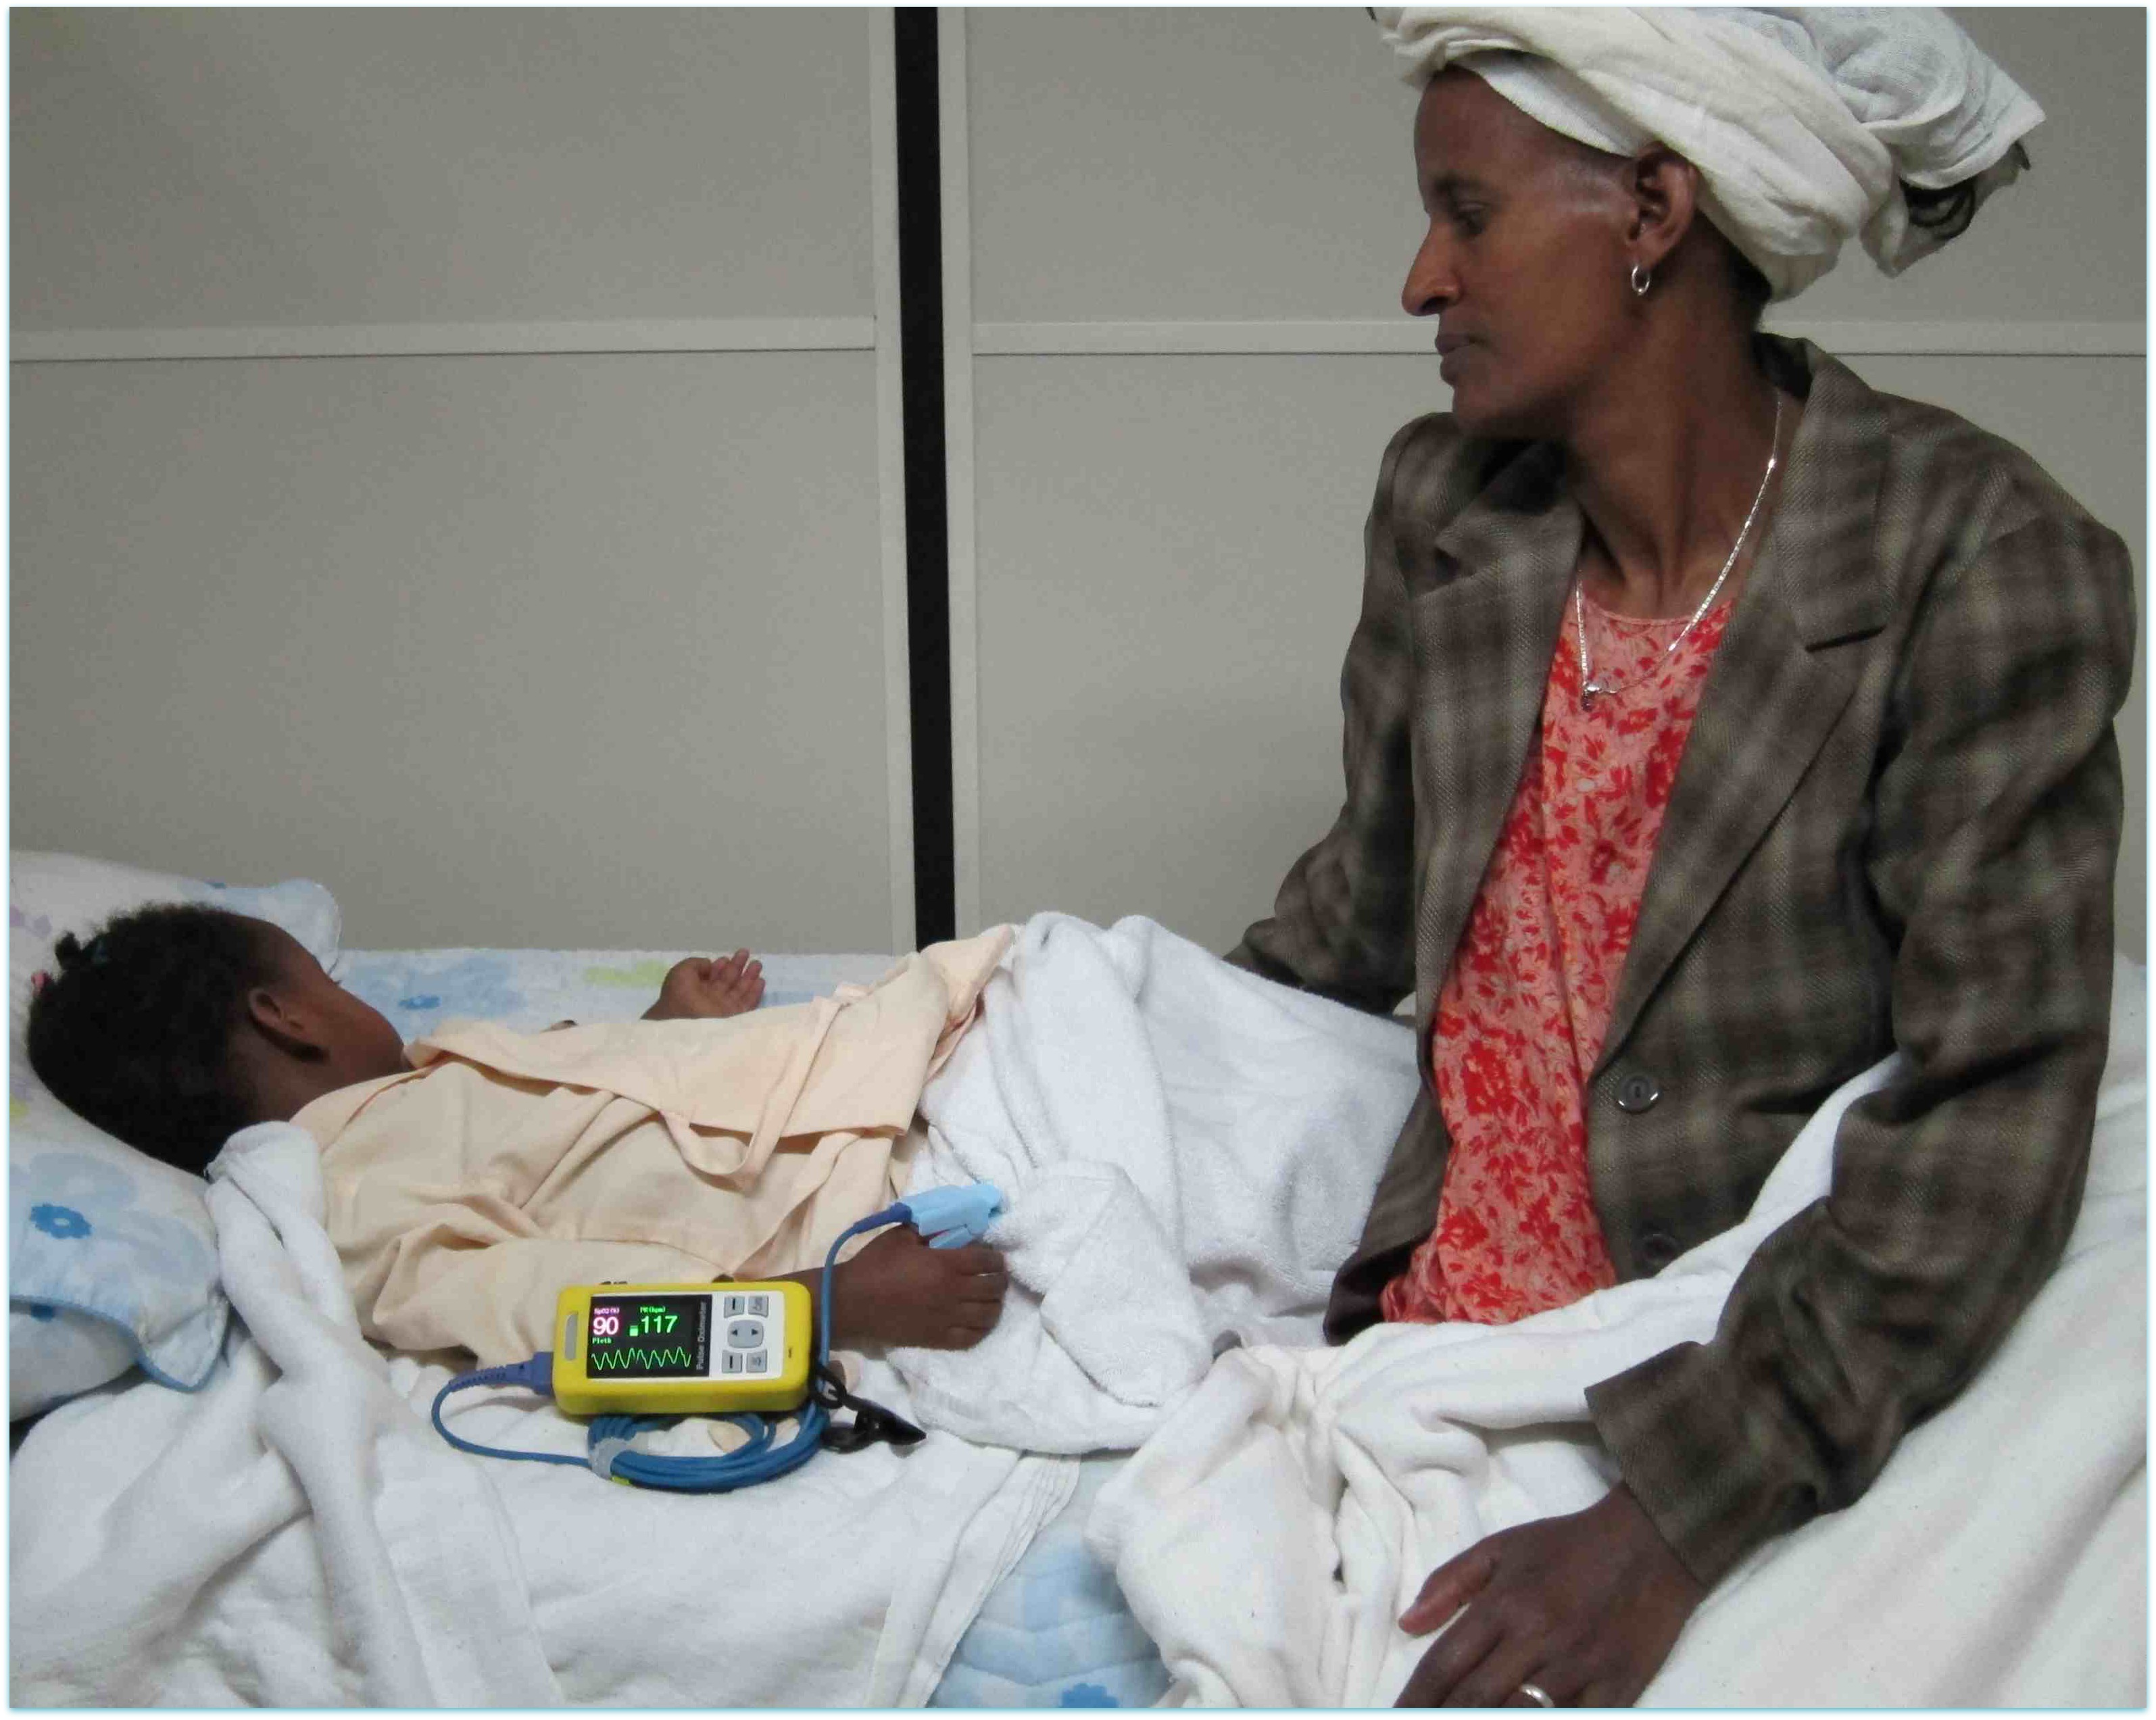 AAGBI donation, Black Lion, Addis_2011_Ethiopia_chain of hope (11)_oximetry patient